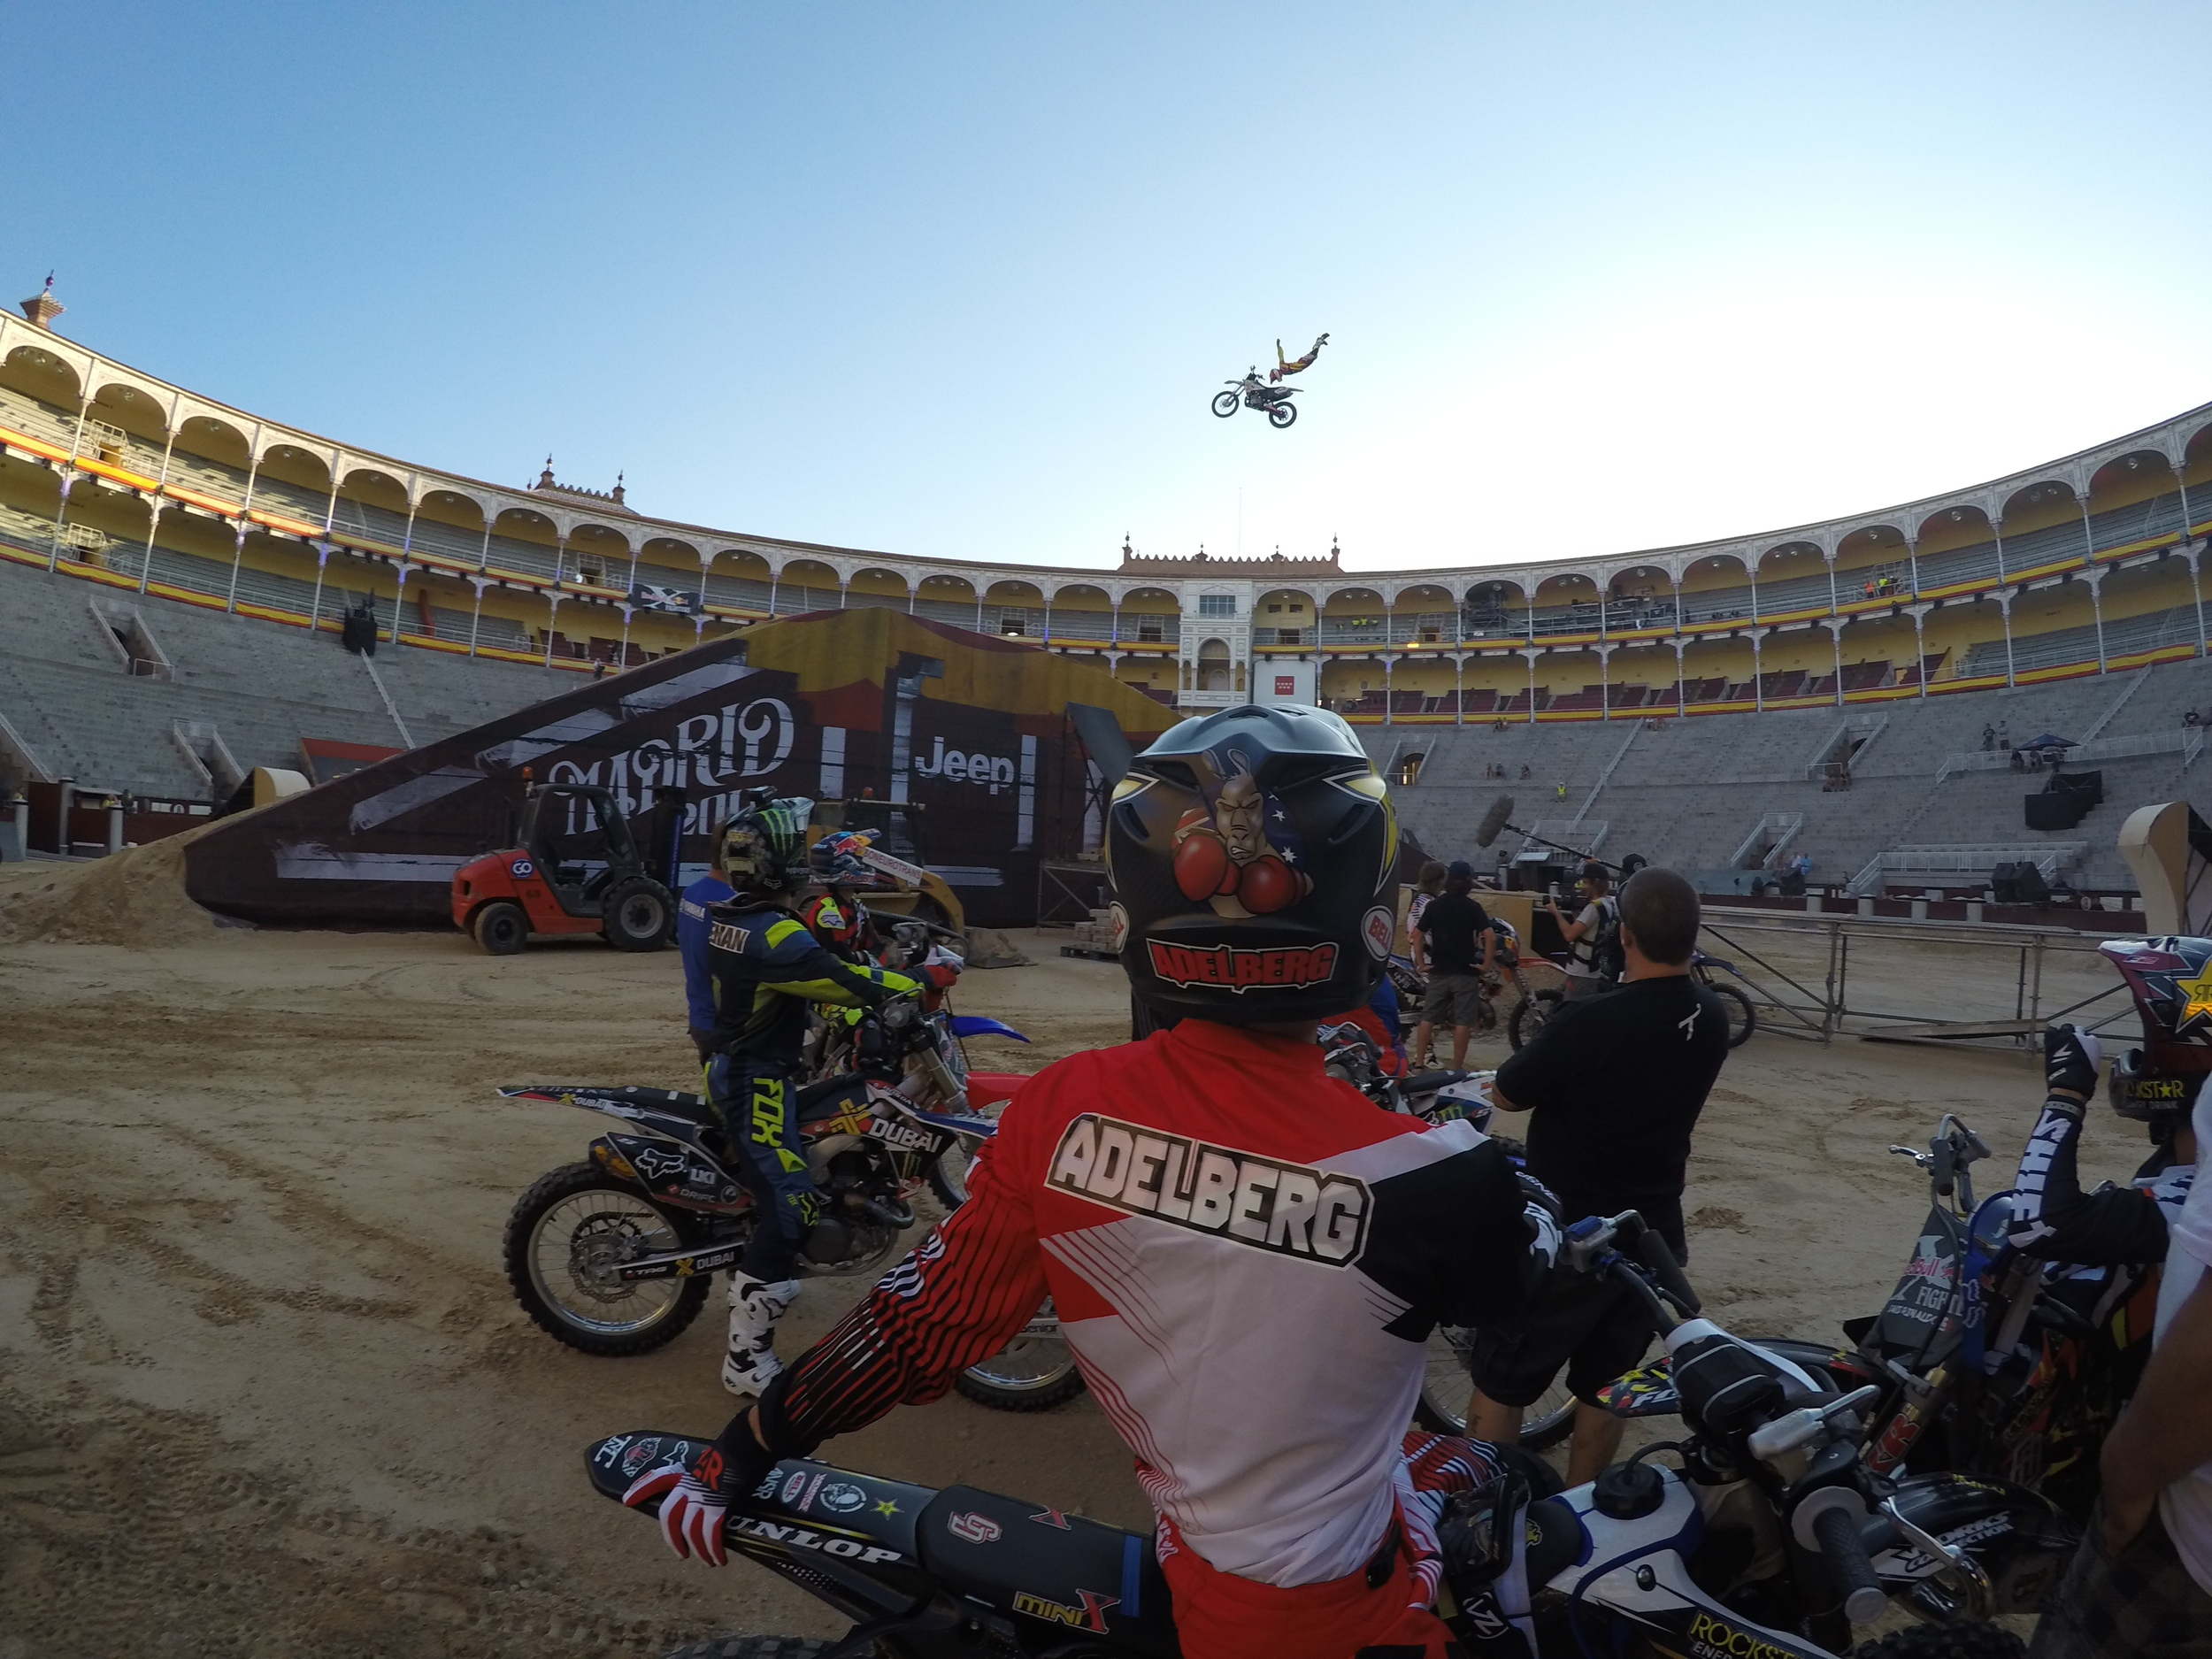 Course testing at RedBull X Fighters